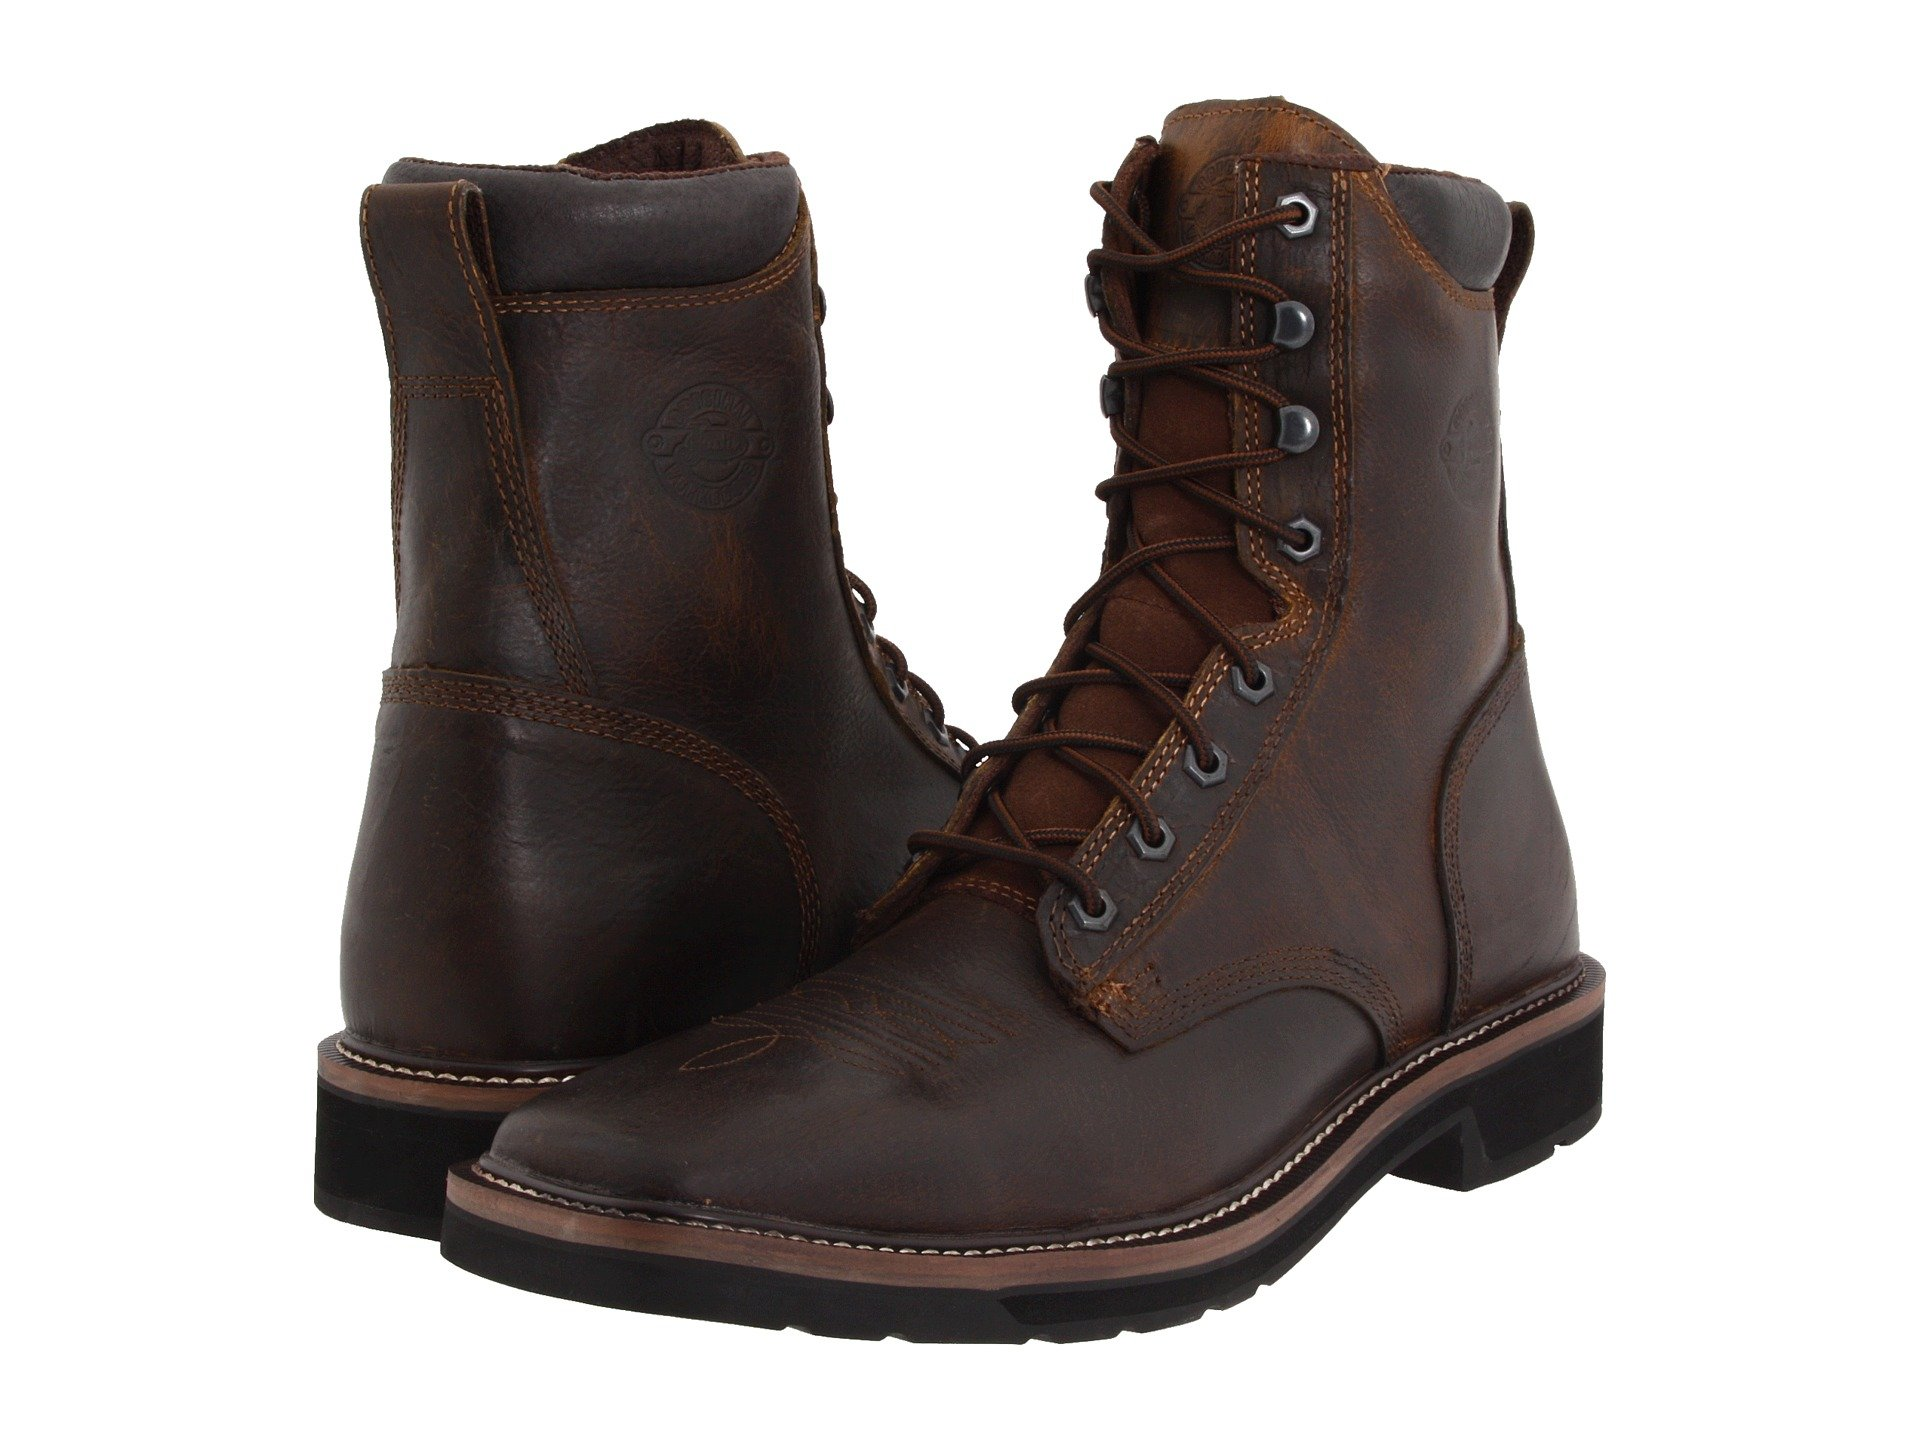 6fafe5ed6d1 Men's Justin Boots + FREE SHIPPING | Shoes | Zappos.com